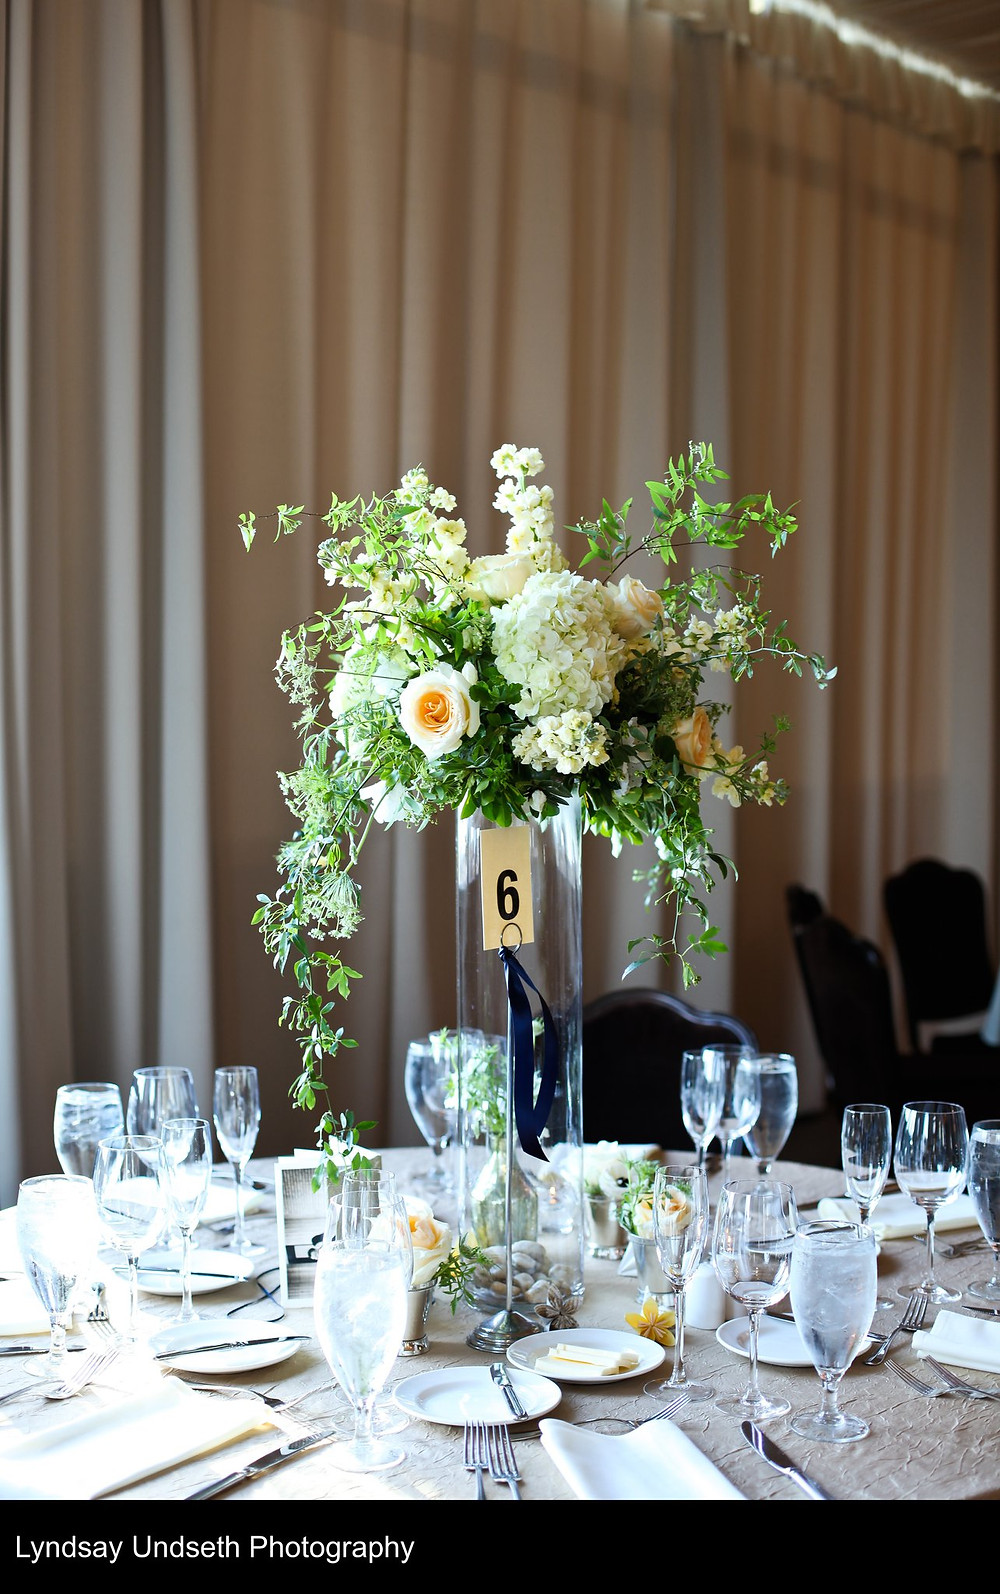 Tall floral centerpieces in buttercream, soft apricot, green and white by Visual Impact Design, Sacramento Wedding Florist | Kate Whelan Events | Lyndsay Undseth Photography | Citizen Hotel Wedding Reception